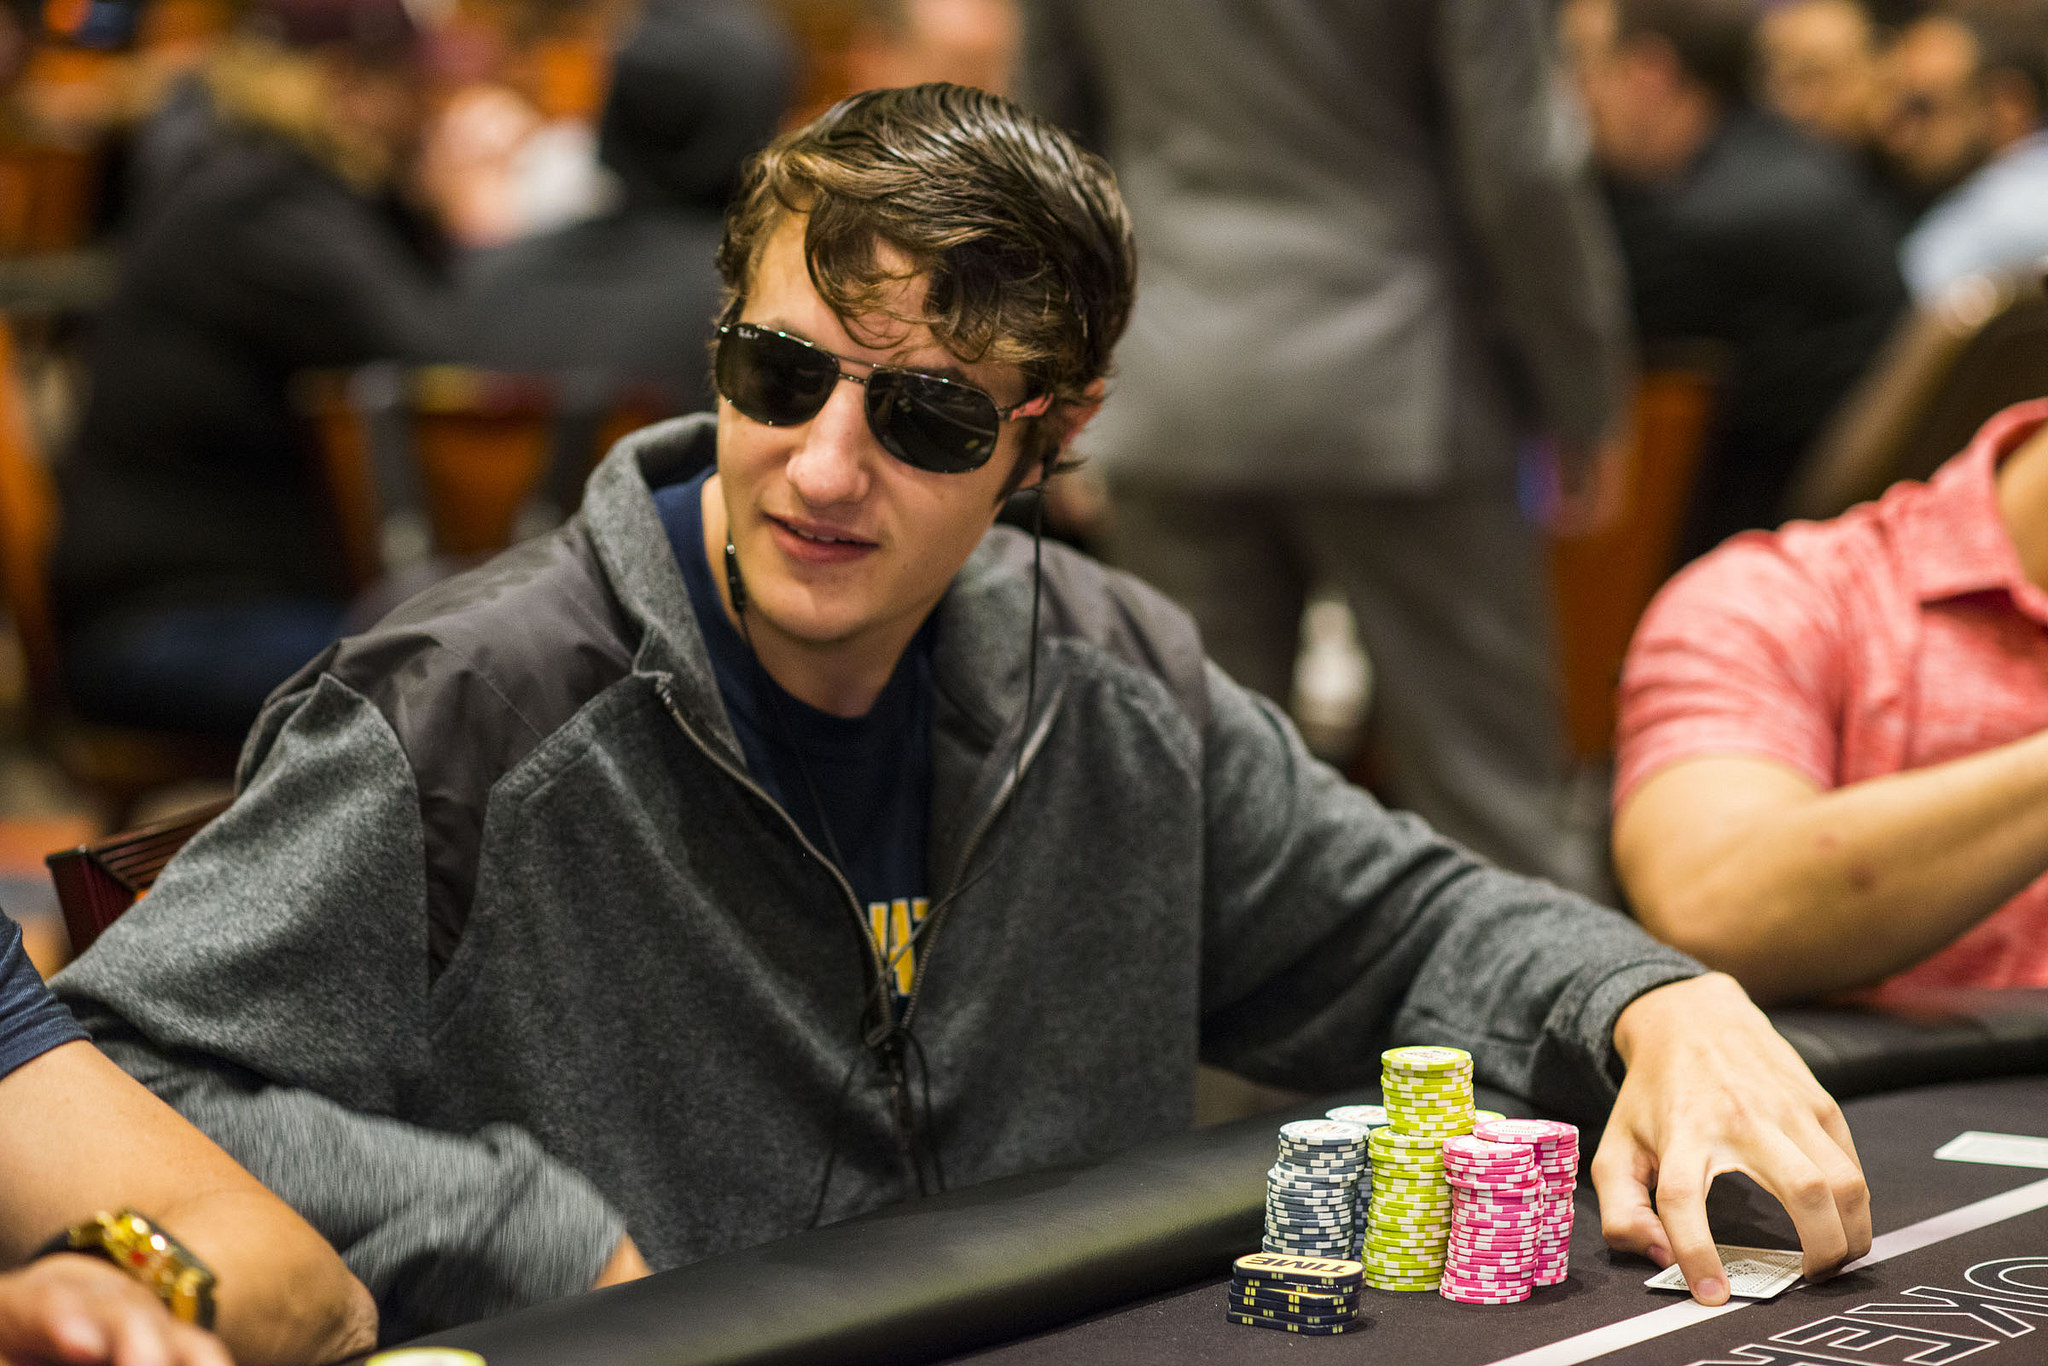 Stashin Chips 20 Year Old College Student Leads Field At Wpt Choctaw World Poker Tour